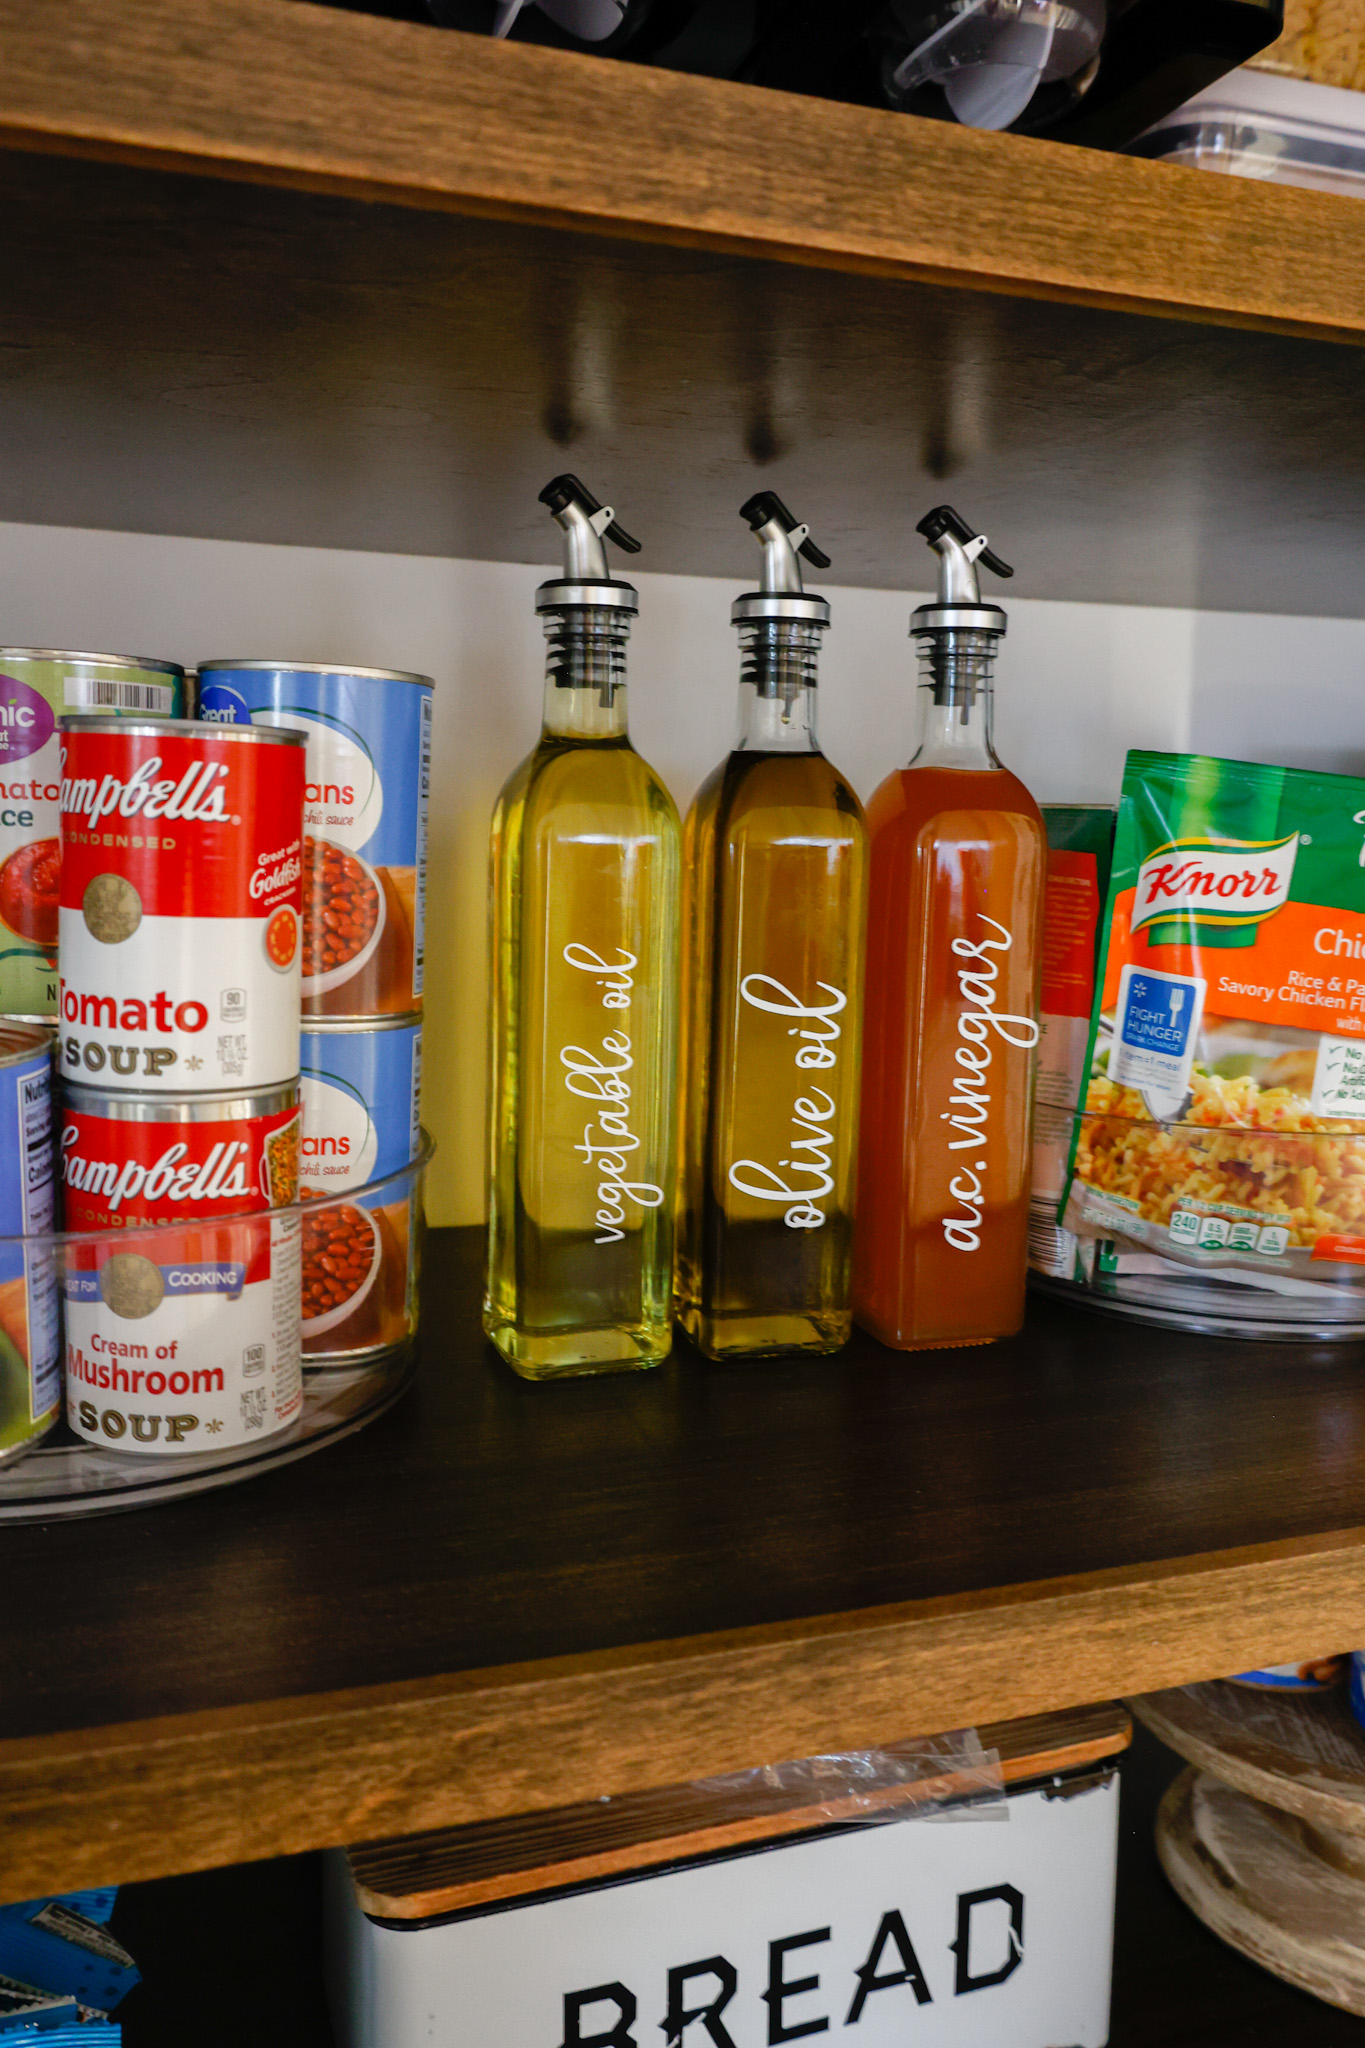 cabinet organization ideas for pantry items